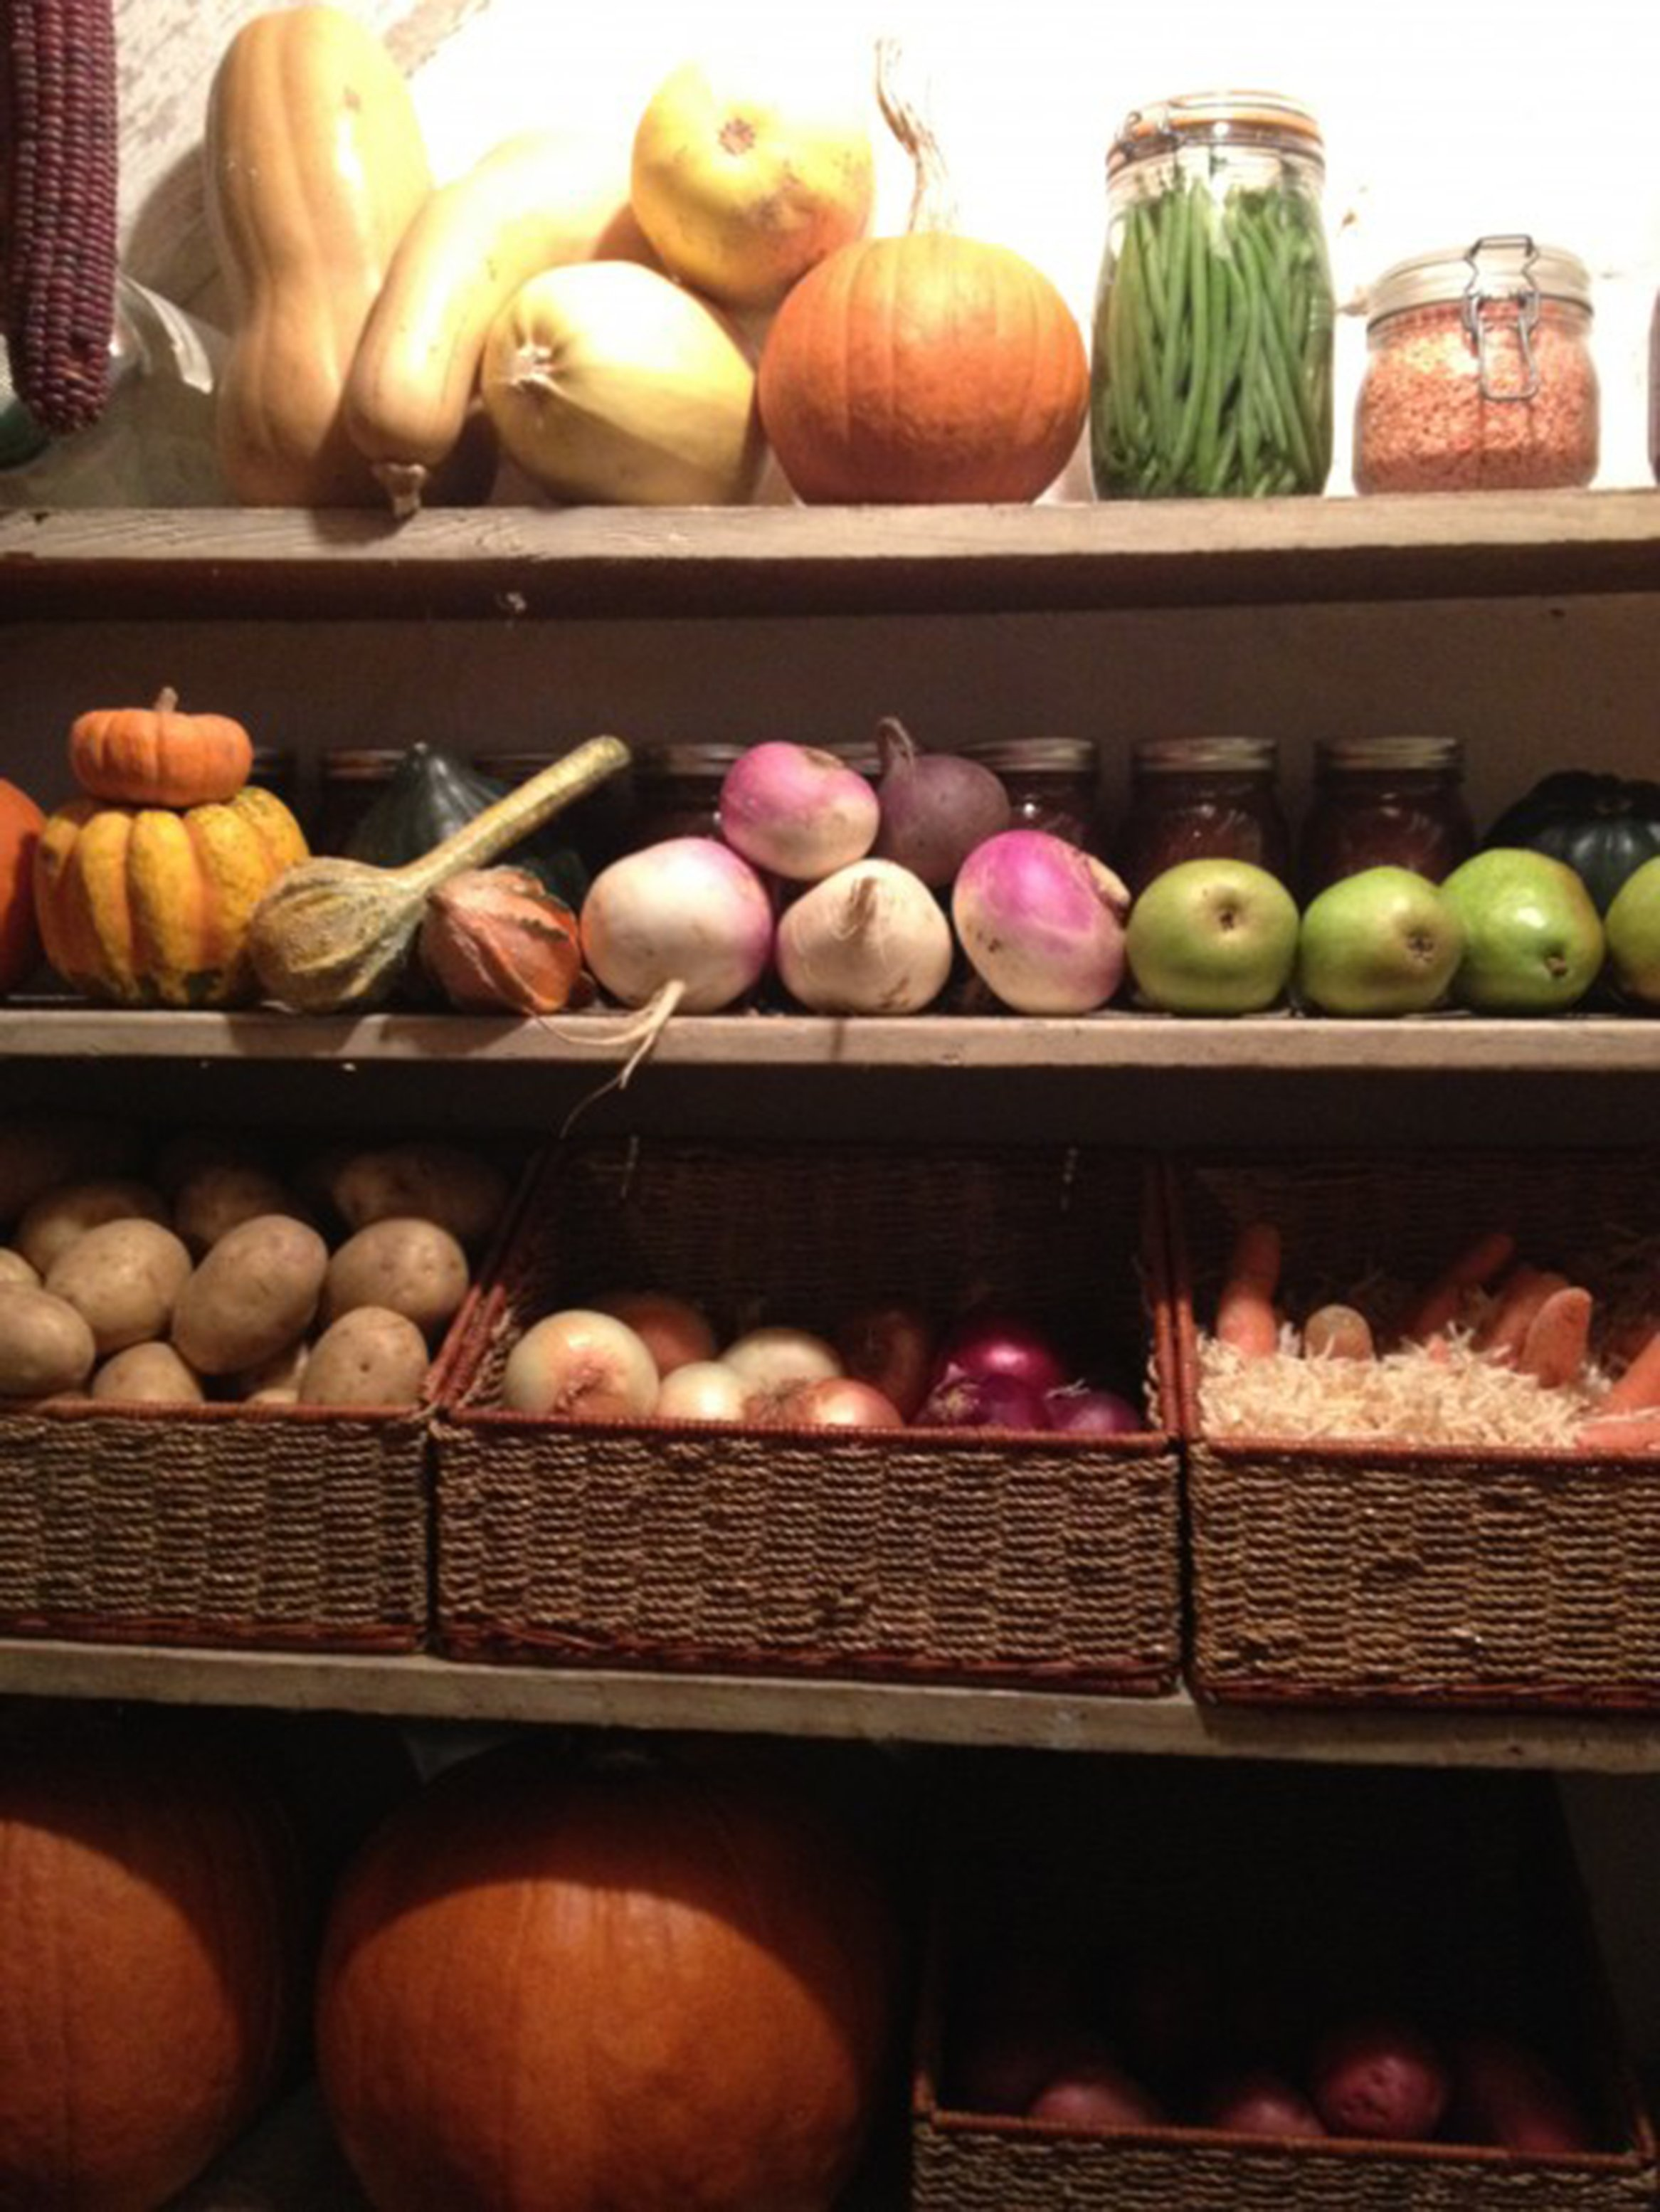 Storing Vegetables for Winter